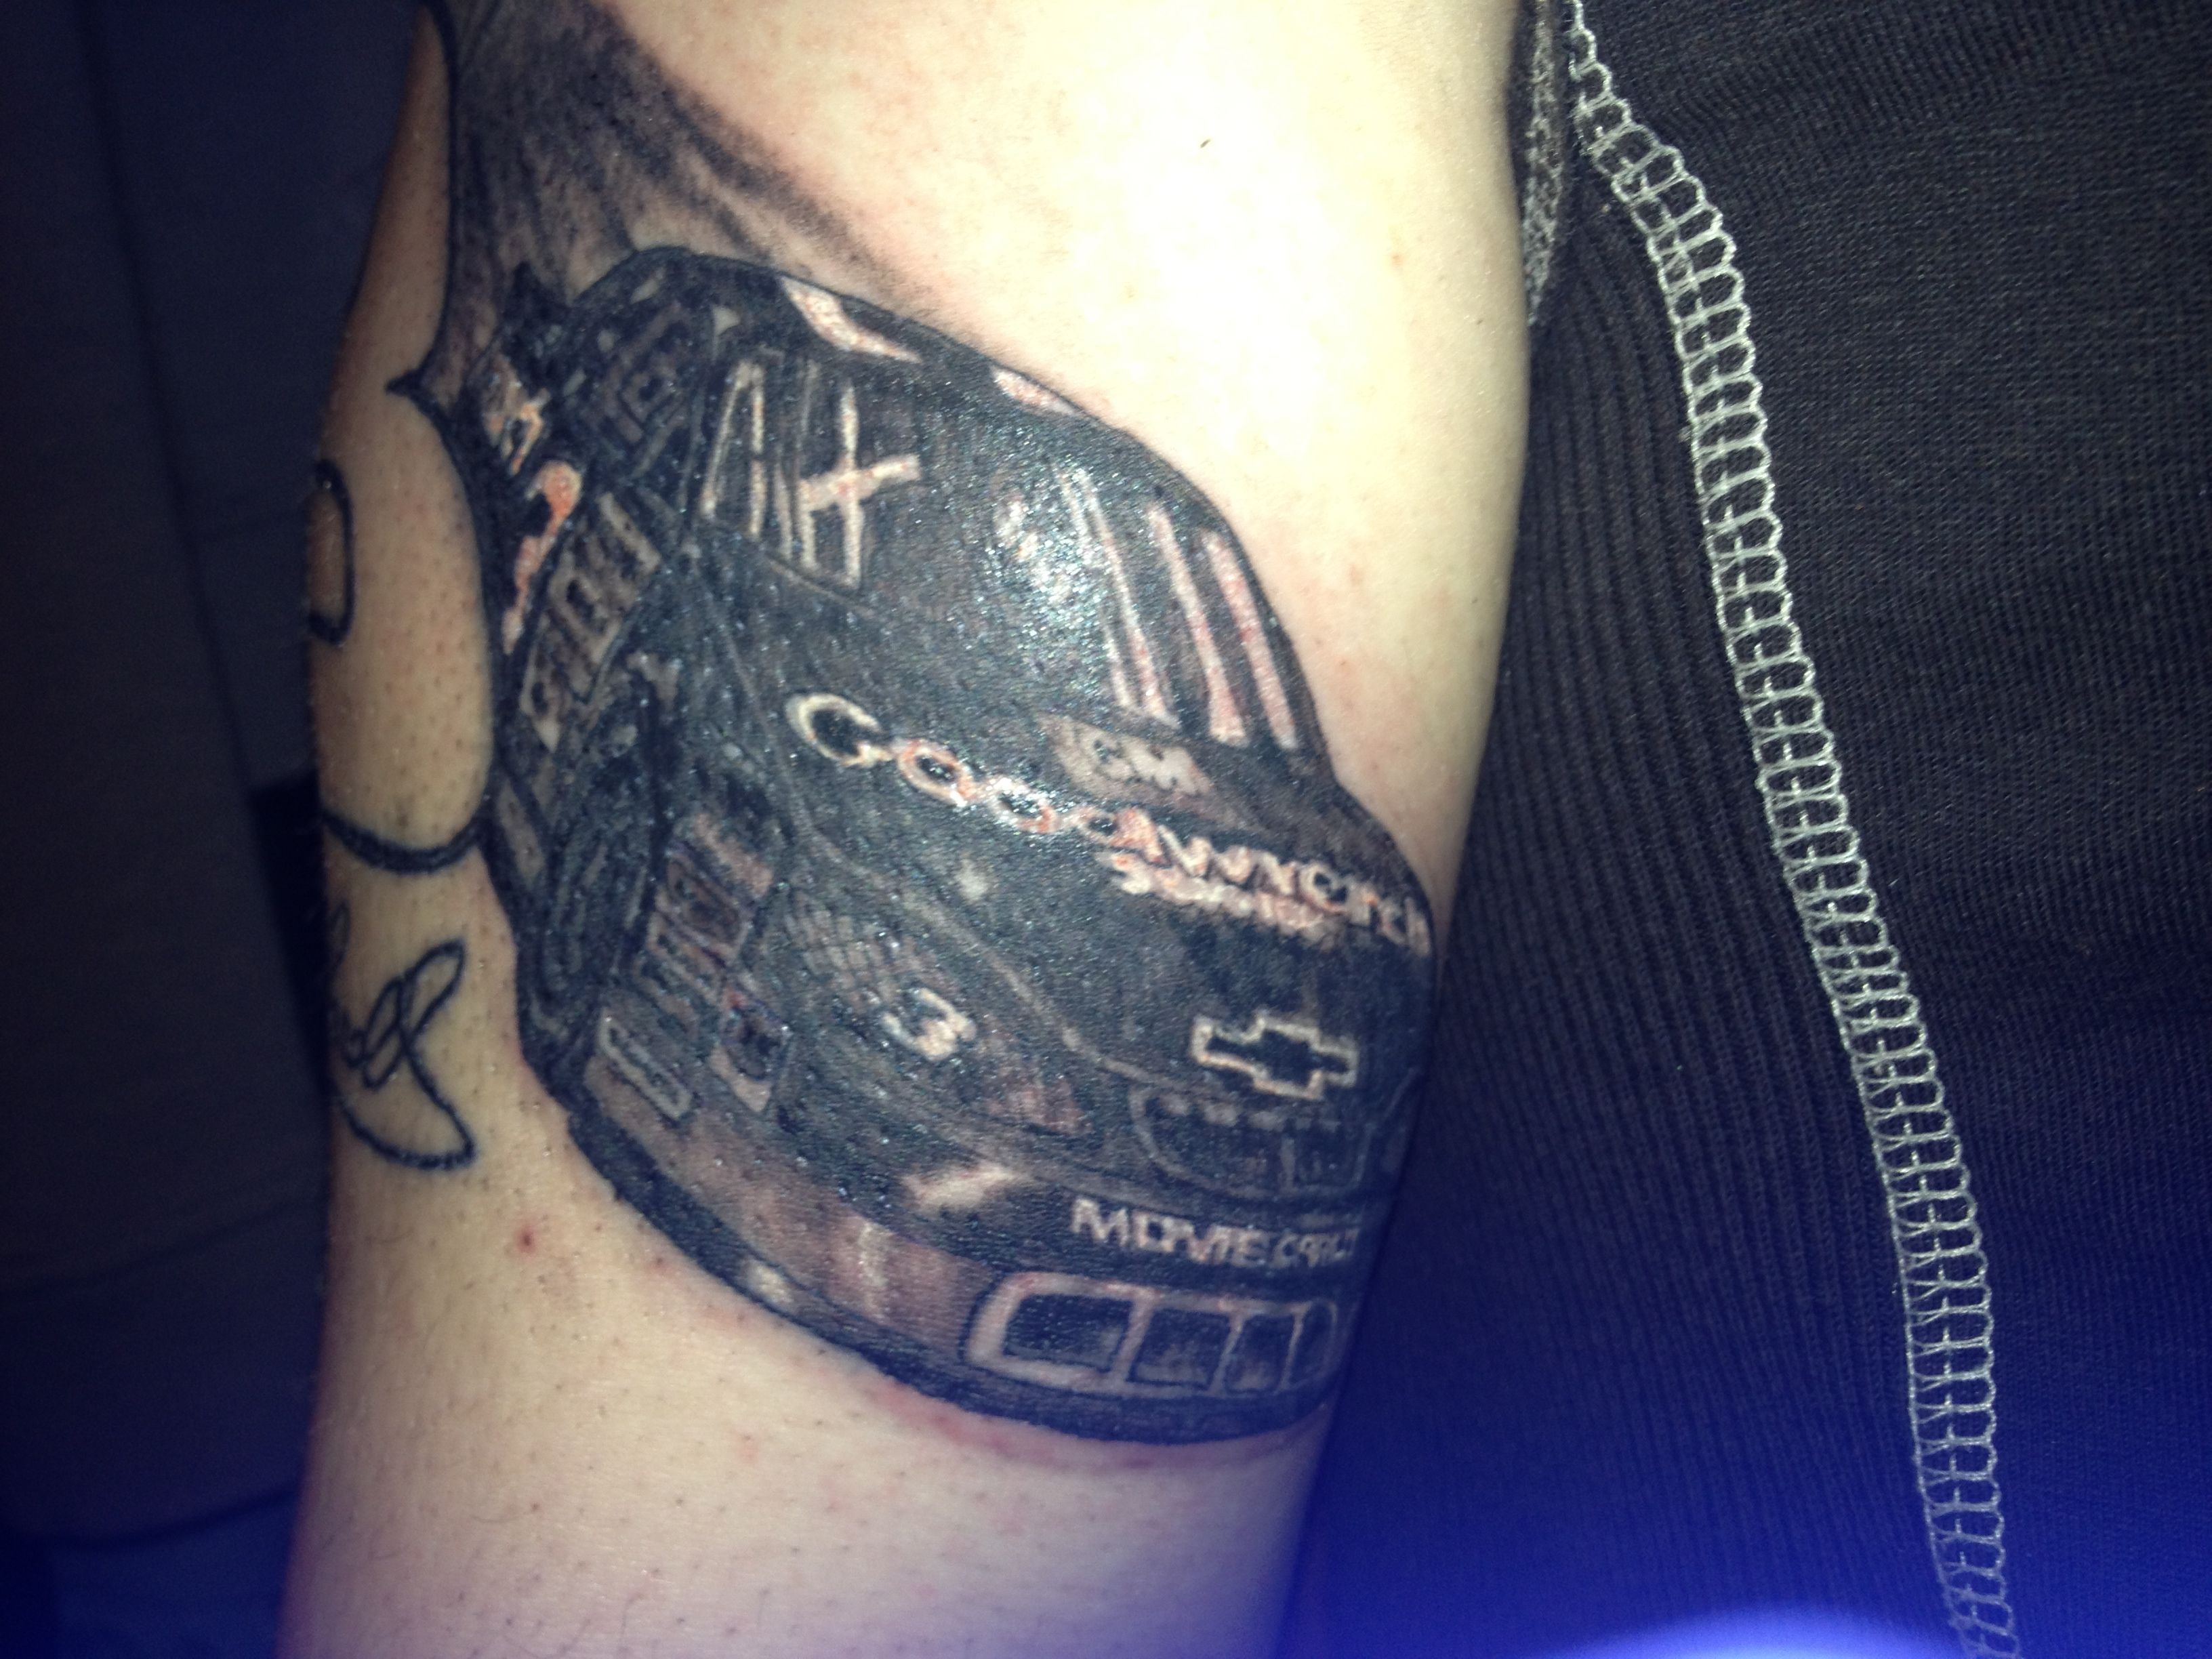 Route 66 tattoo picture at checkoutmyink com - Nascar Dale Earnhardt 3 Car Tattoo